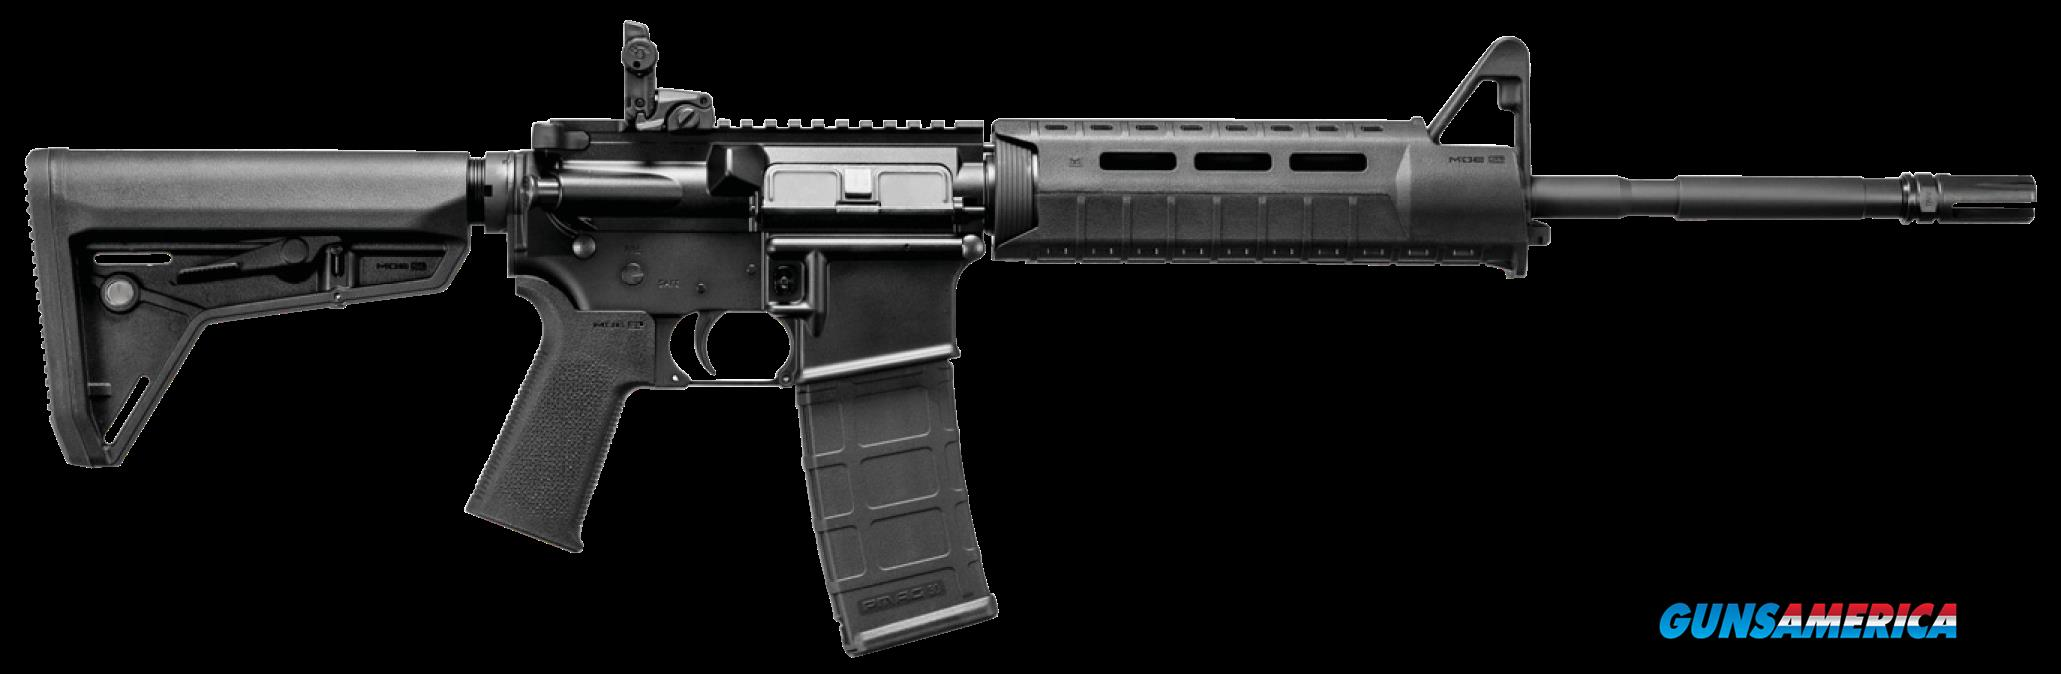 "DPMS 60529 Moe Warrior Semi-Automatic 223 Remington/5.56 NATO 16"" 30+1 Magpul MOE SL Black Stk Black  Guns > Rifles > DPMS - Panther Arms > Complete Rifle"